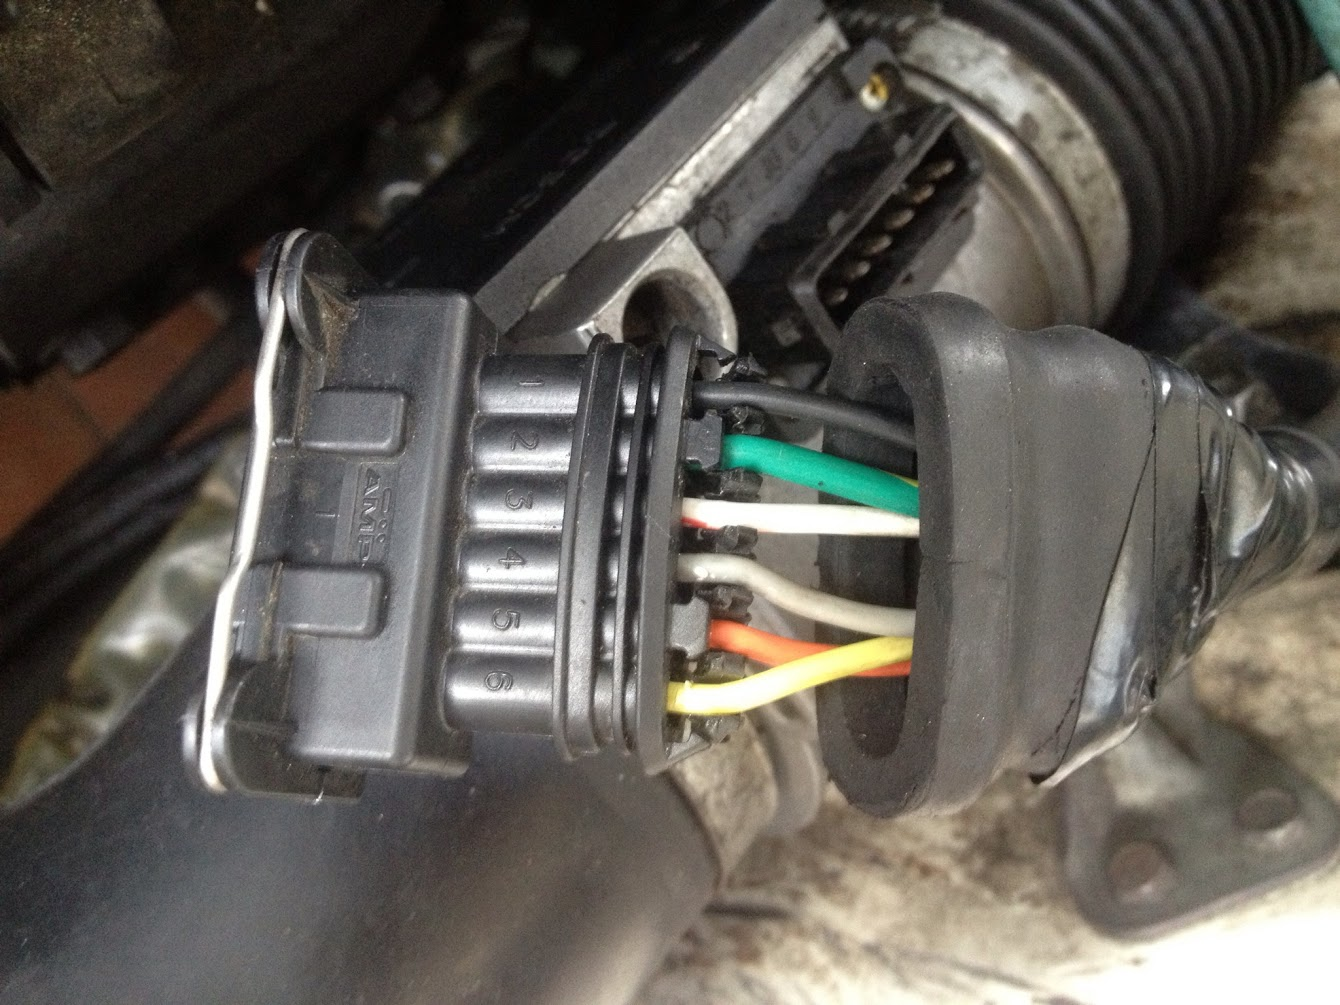 Daily Turismo Dtpc Efi System Upgrade All Systems Are Gountil 1988 Merkur Xr4ti Wiring Diagram I Double Checked The Lh22 1986 In My Volvo 240 Factory Service Manual And Verified It Matched Junkyard Reference Connector